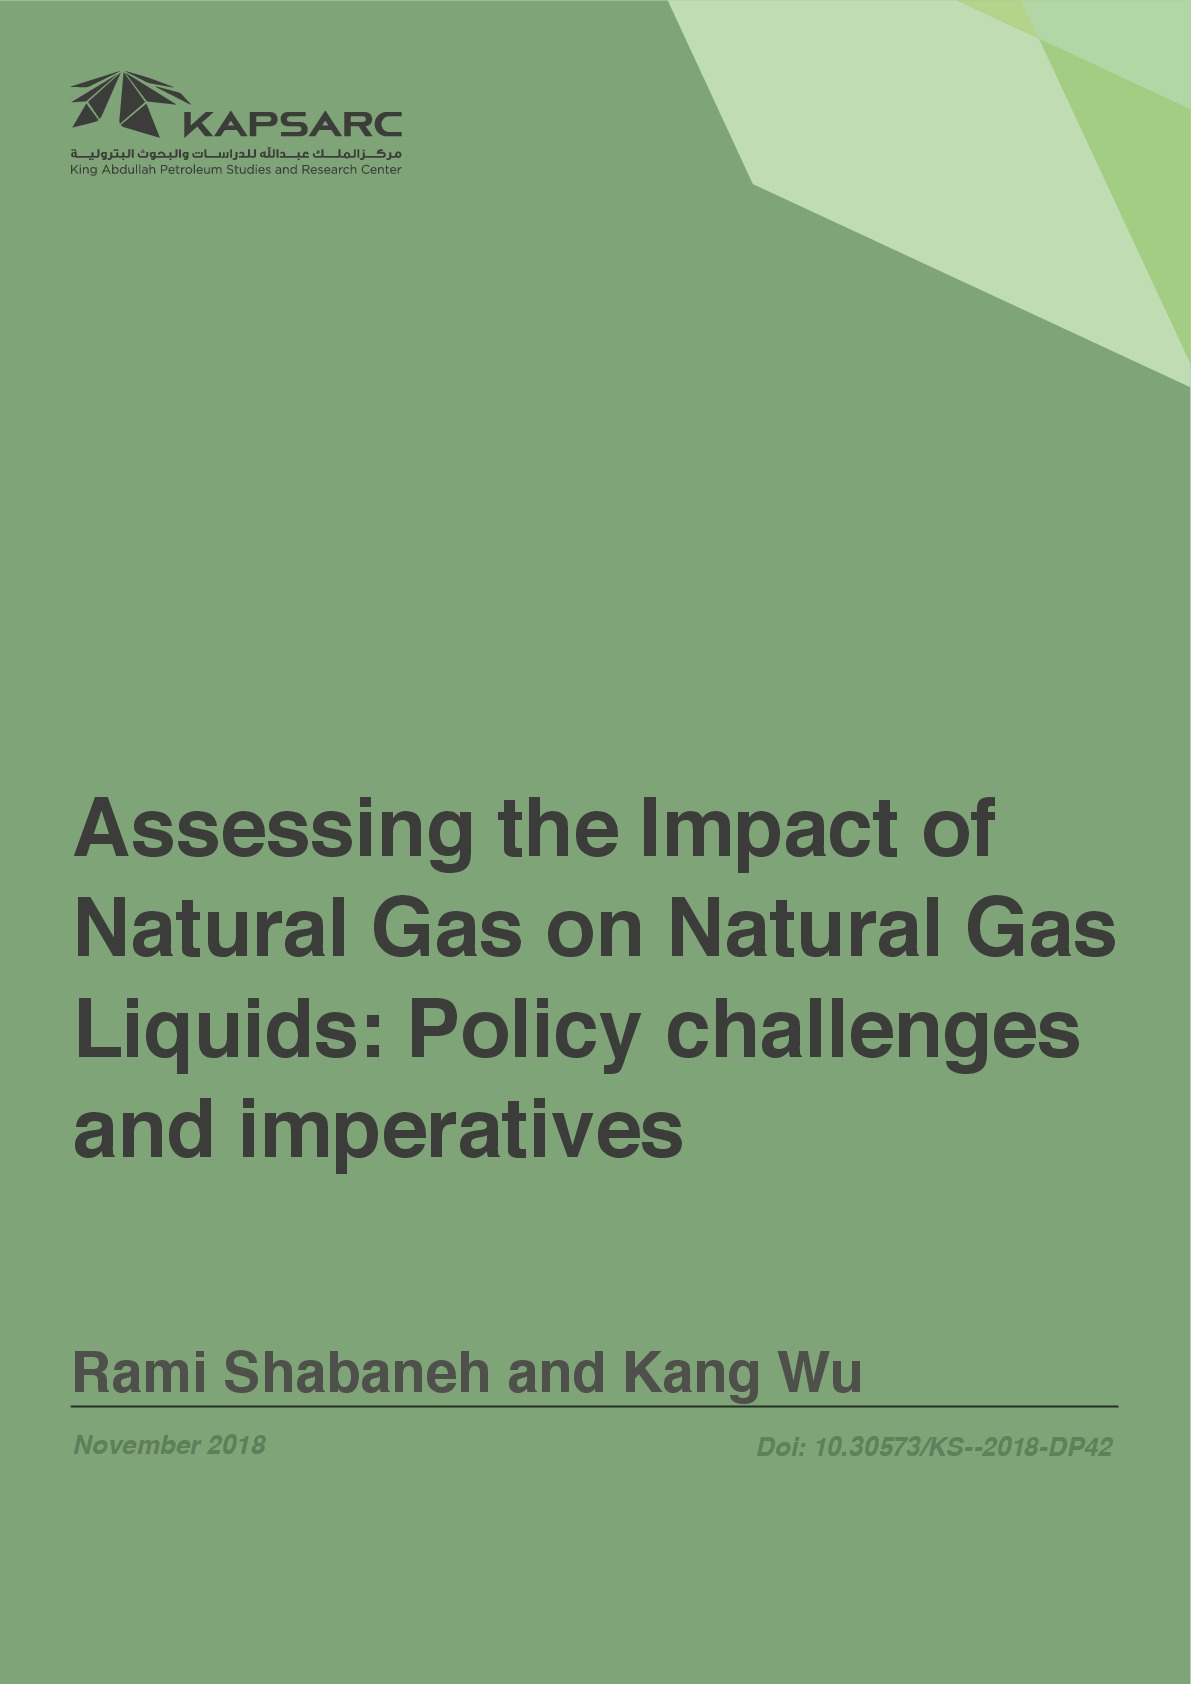 Assessing the Impact of Natural Gas on Natural Gas Liquids: Policy Challenges and Imperatives